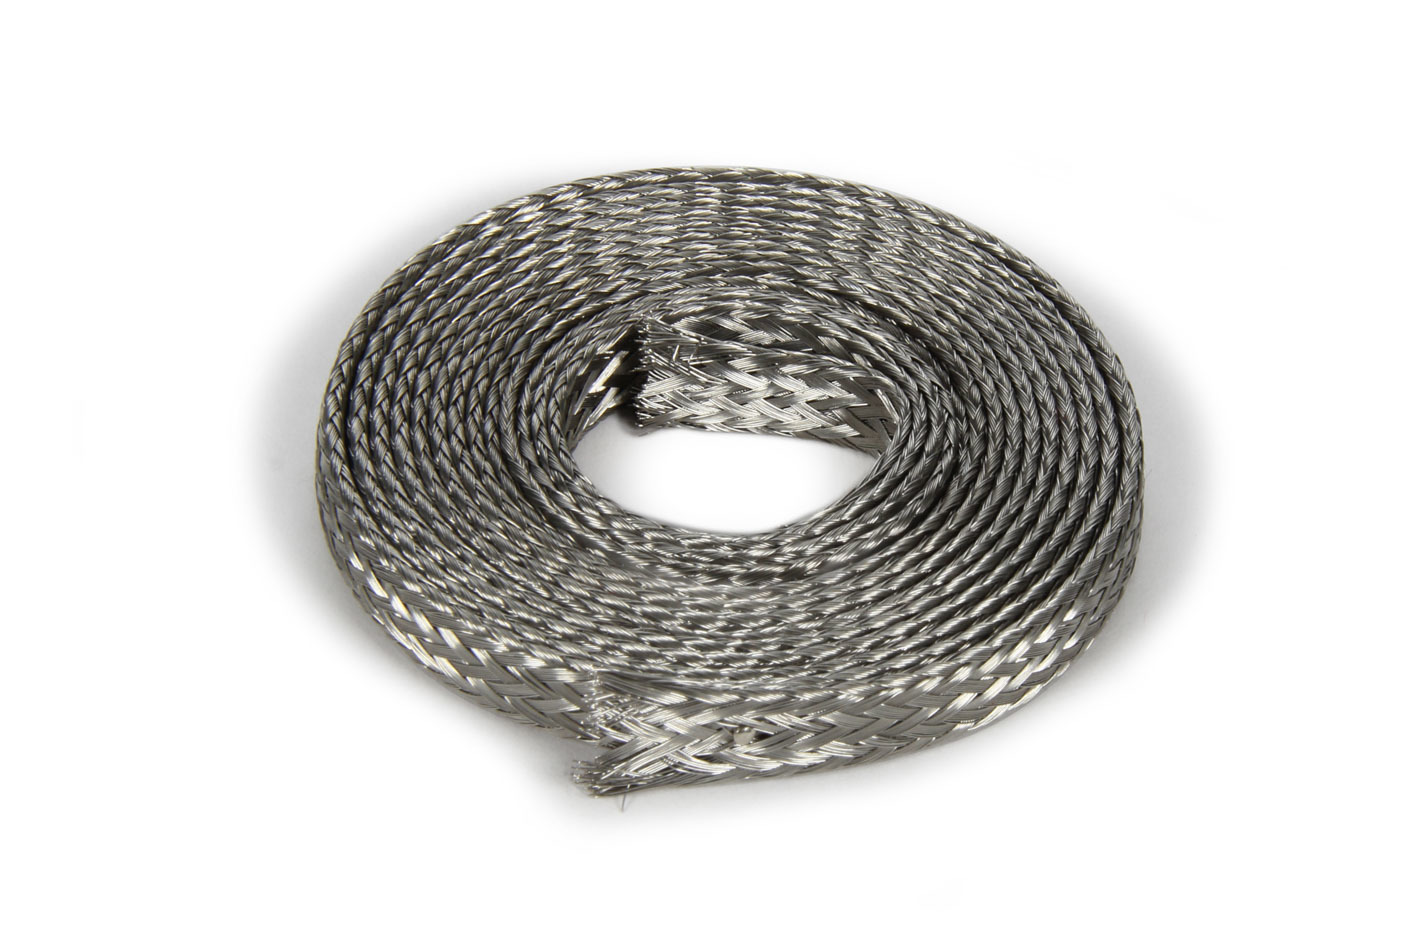 Spectre 1008B Hose and Wire Sleeve, Magna Braid, 1/4 in to 3/8 Hose, 6 ft, Braided Stainless, Each